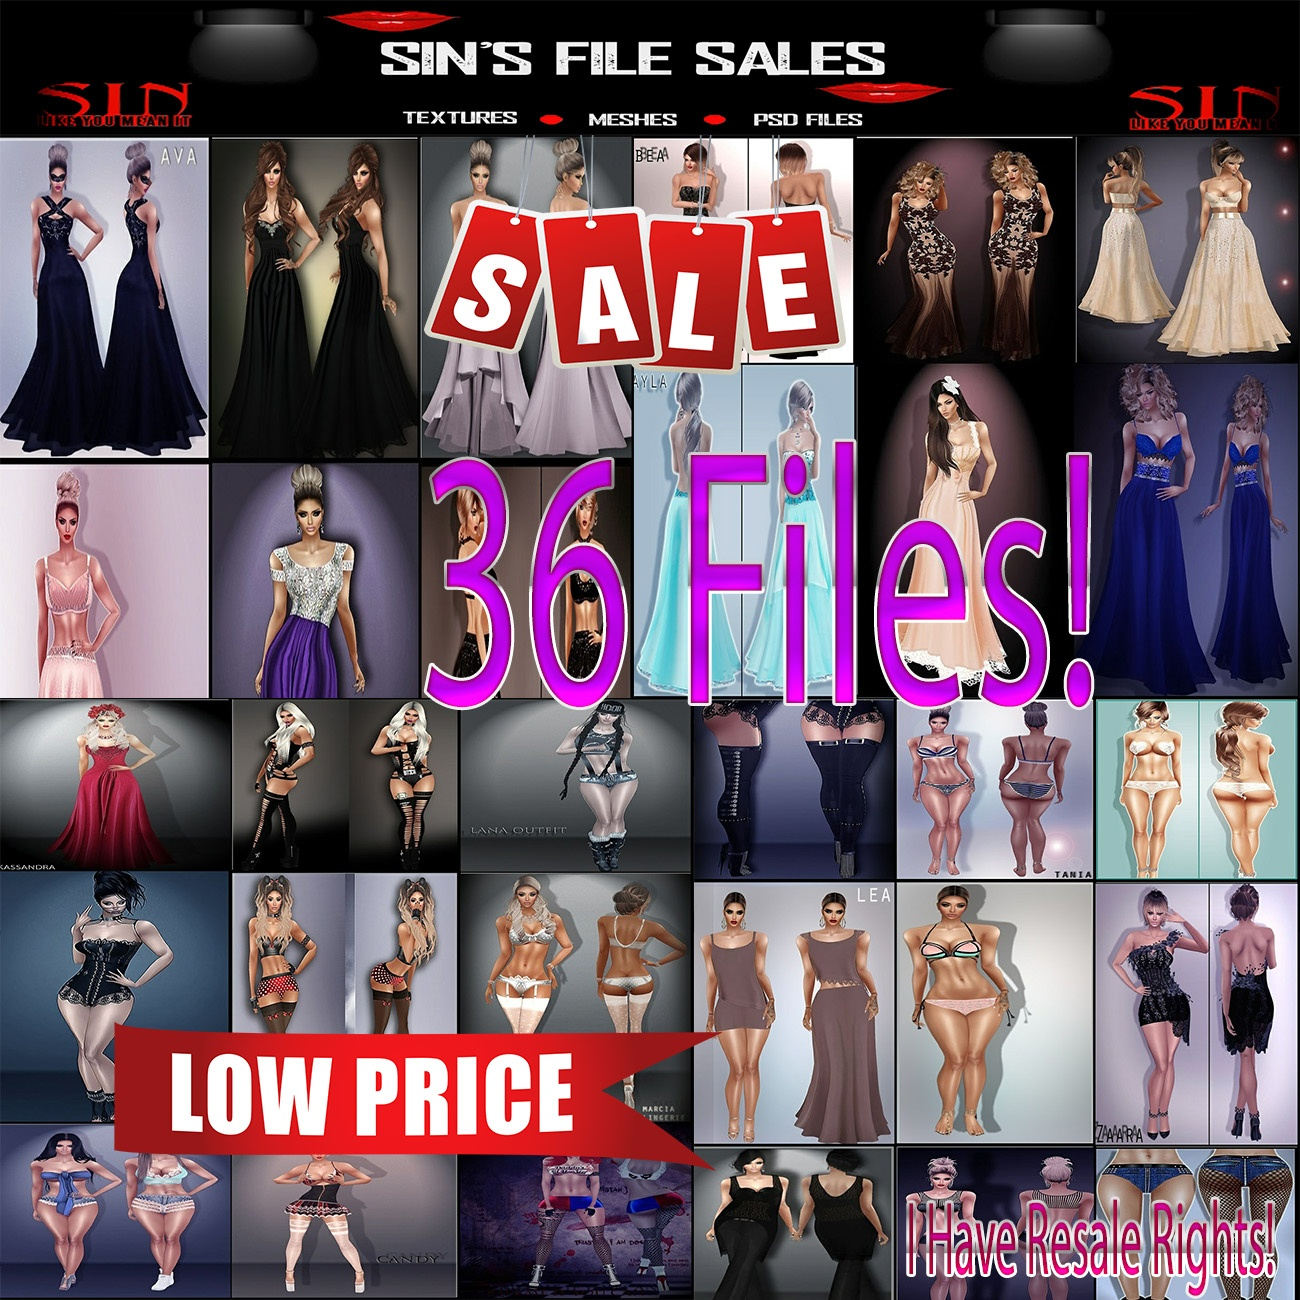 ♥FALL-SALE♥ Bunde and Save 36 Outfit Package!